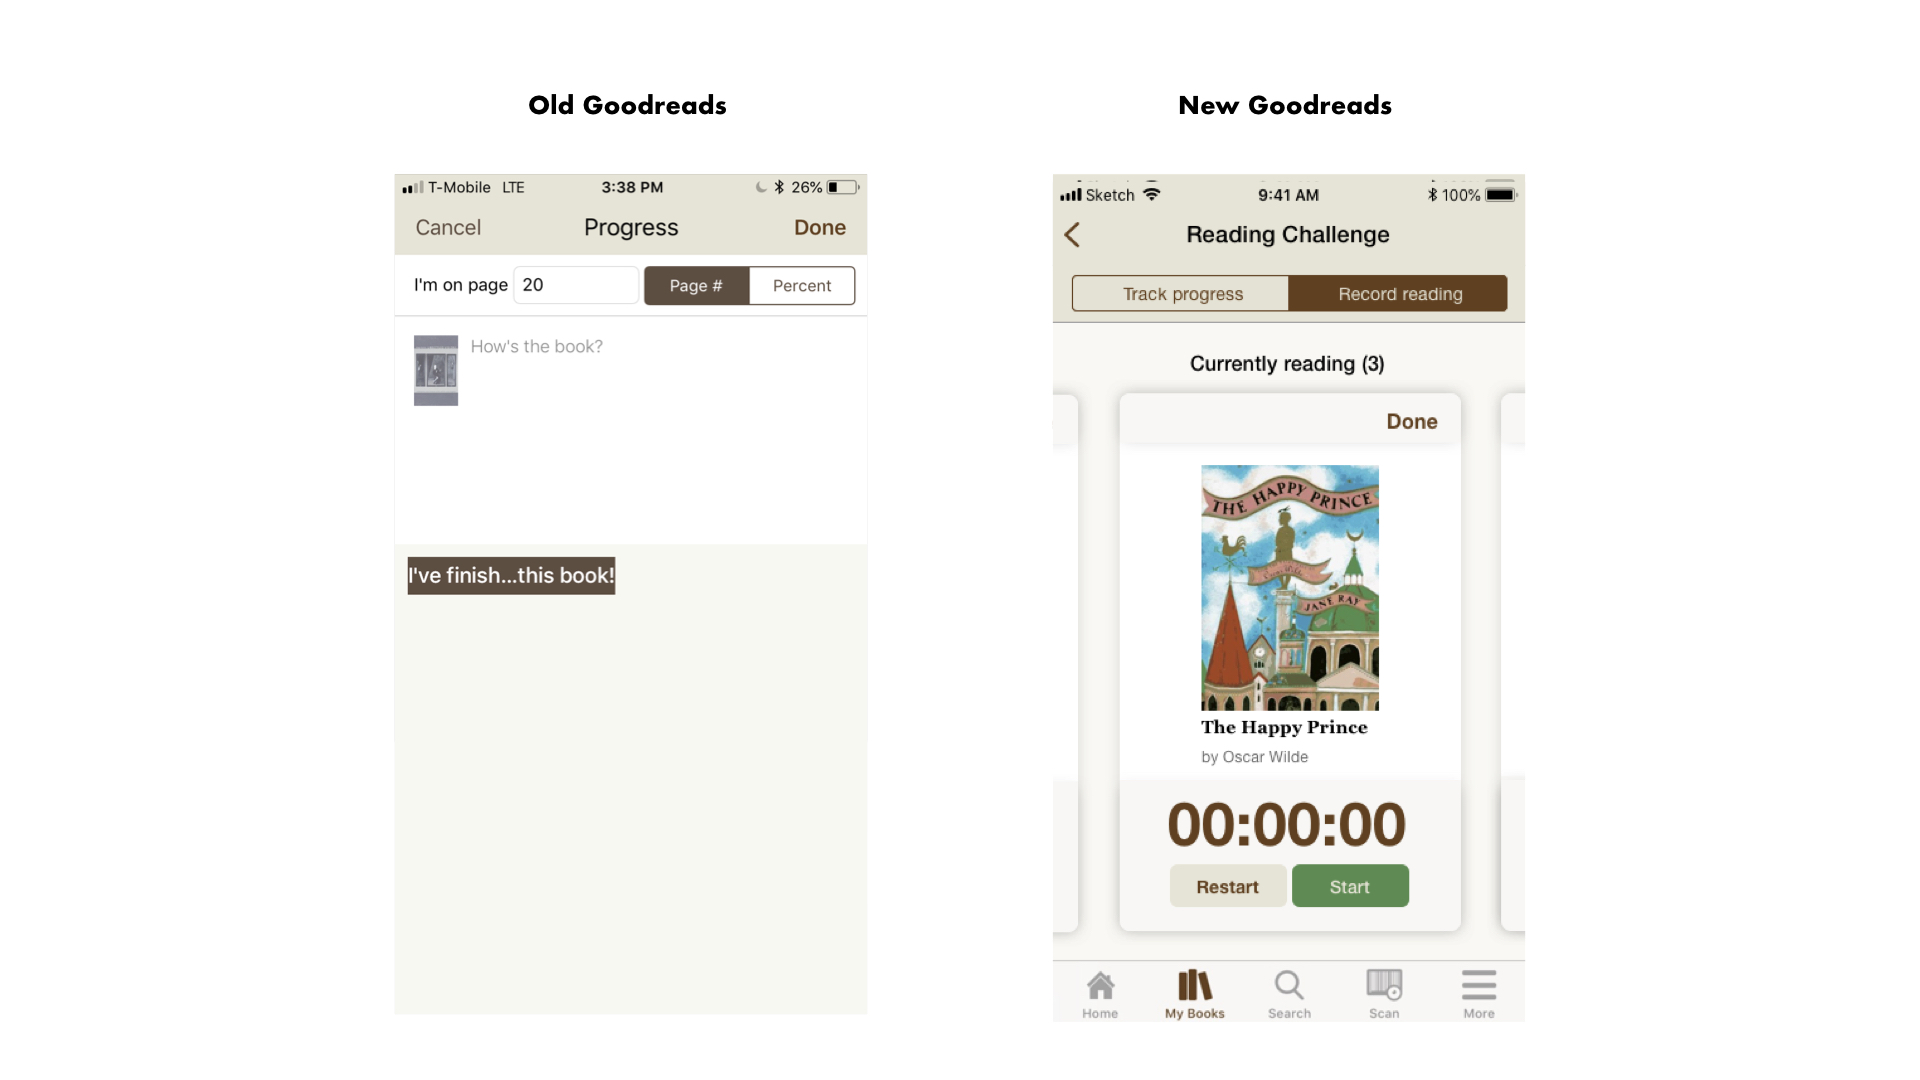 Goodreads redesign app compare.003.jpeg